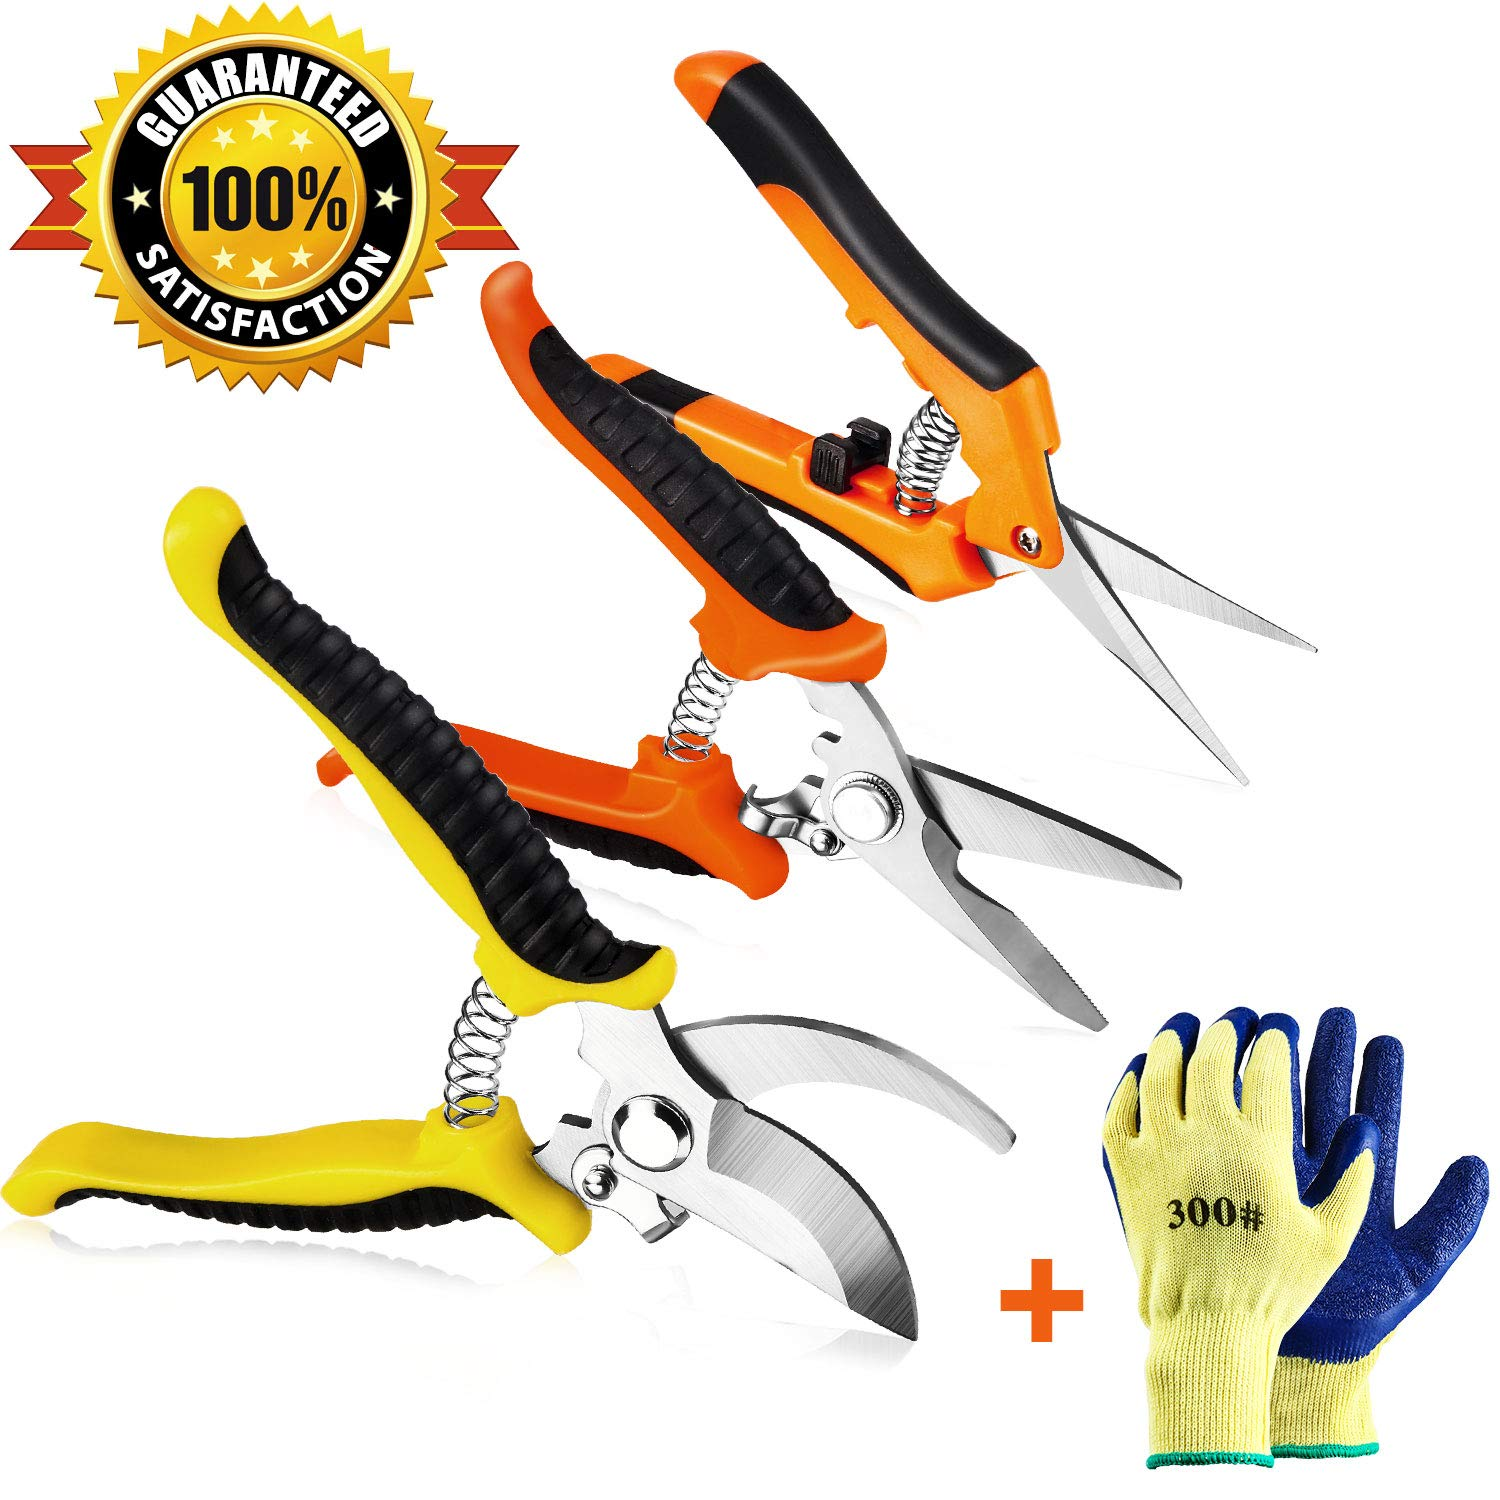 Wevove 3 Pack Garden Pruning Shears Stainless Steel Blades Handheld Pruners Set with Gardening Gloves